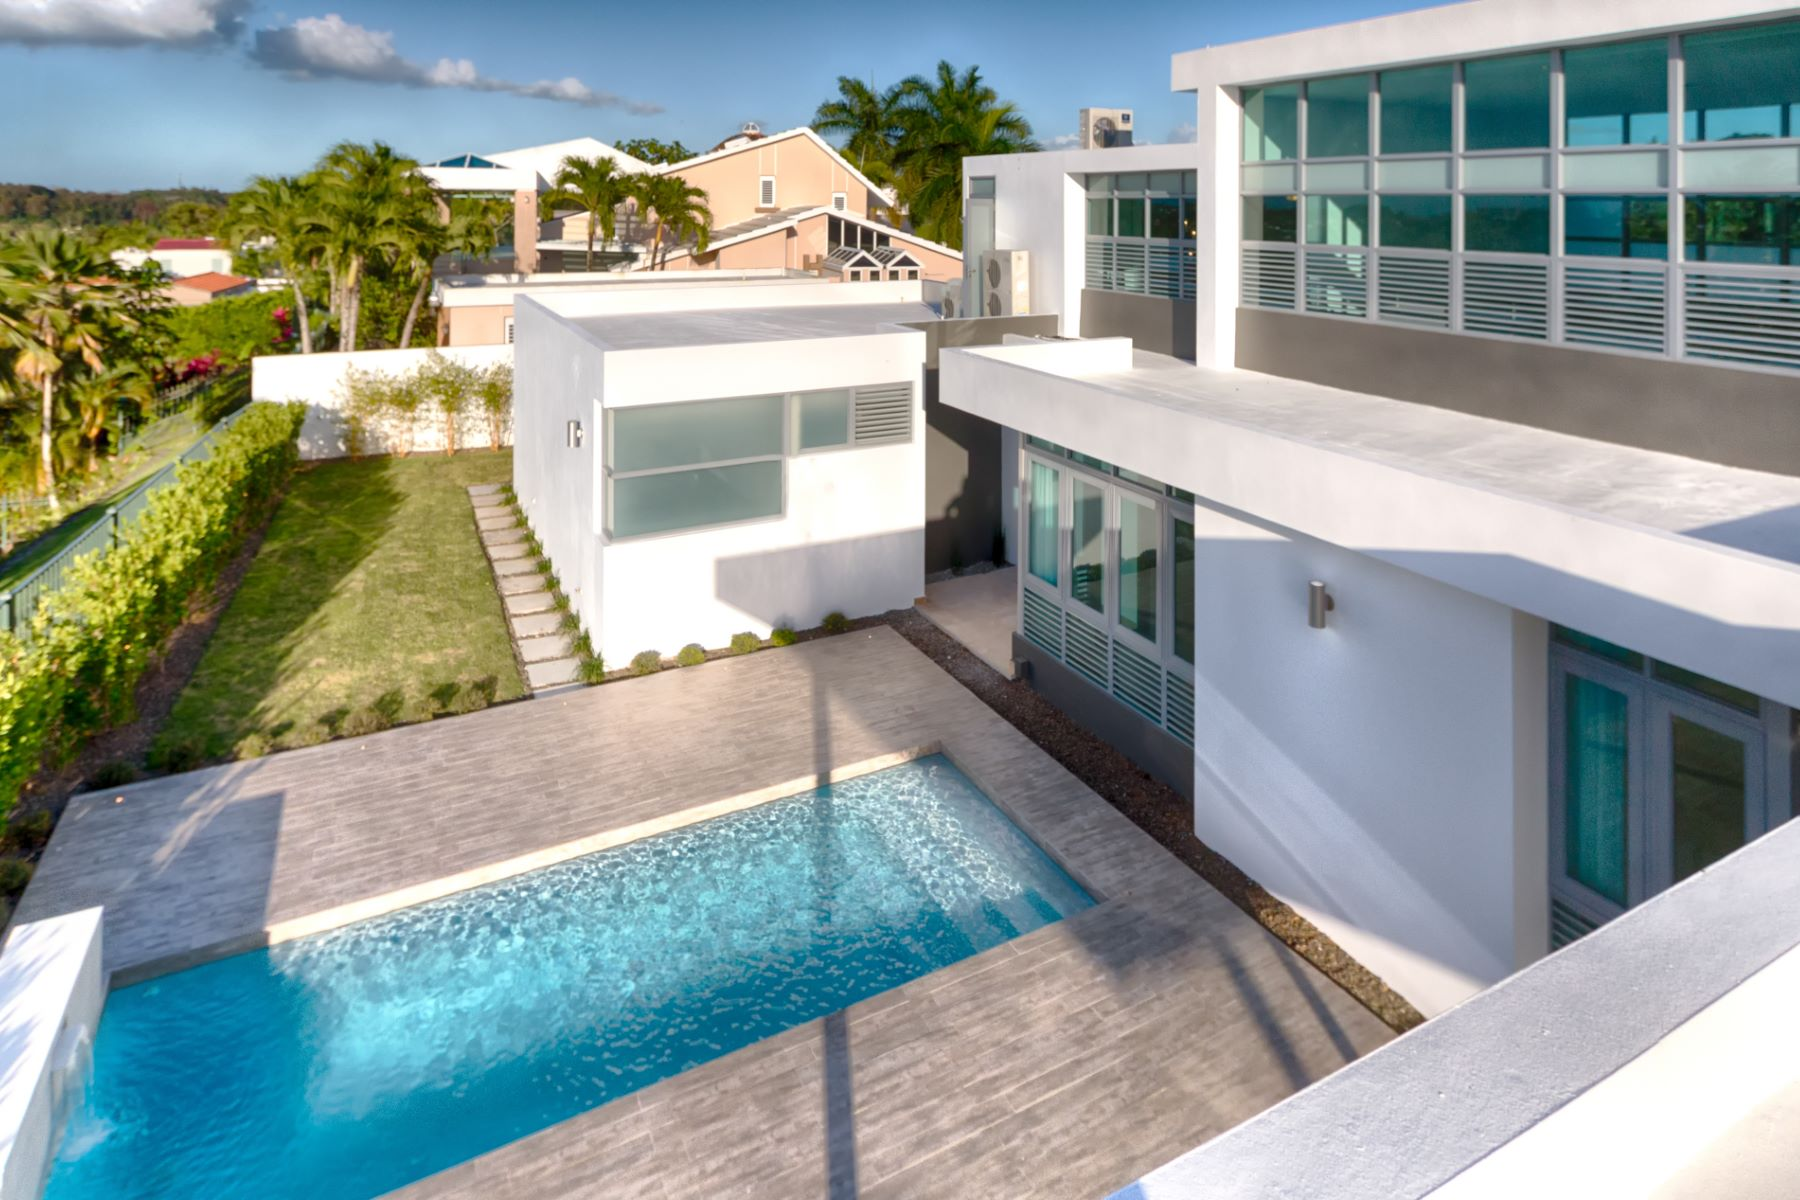 Additional photo for property listing at For Rent Stunning Architectural Estate 168 Calle Tortolla Montehiedra San Juan, Puerto Rico 00926 푸에르토리코